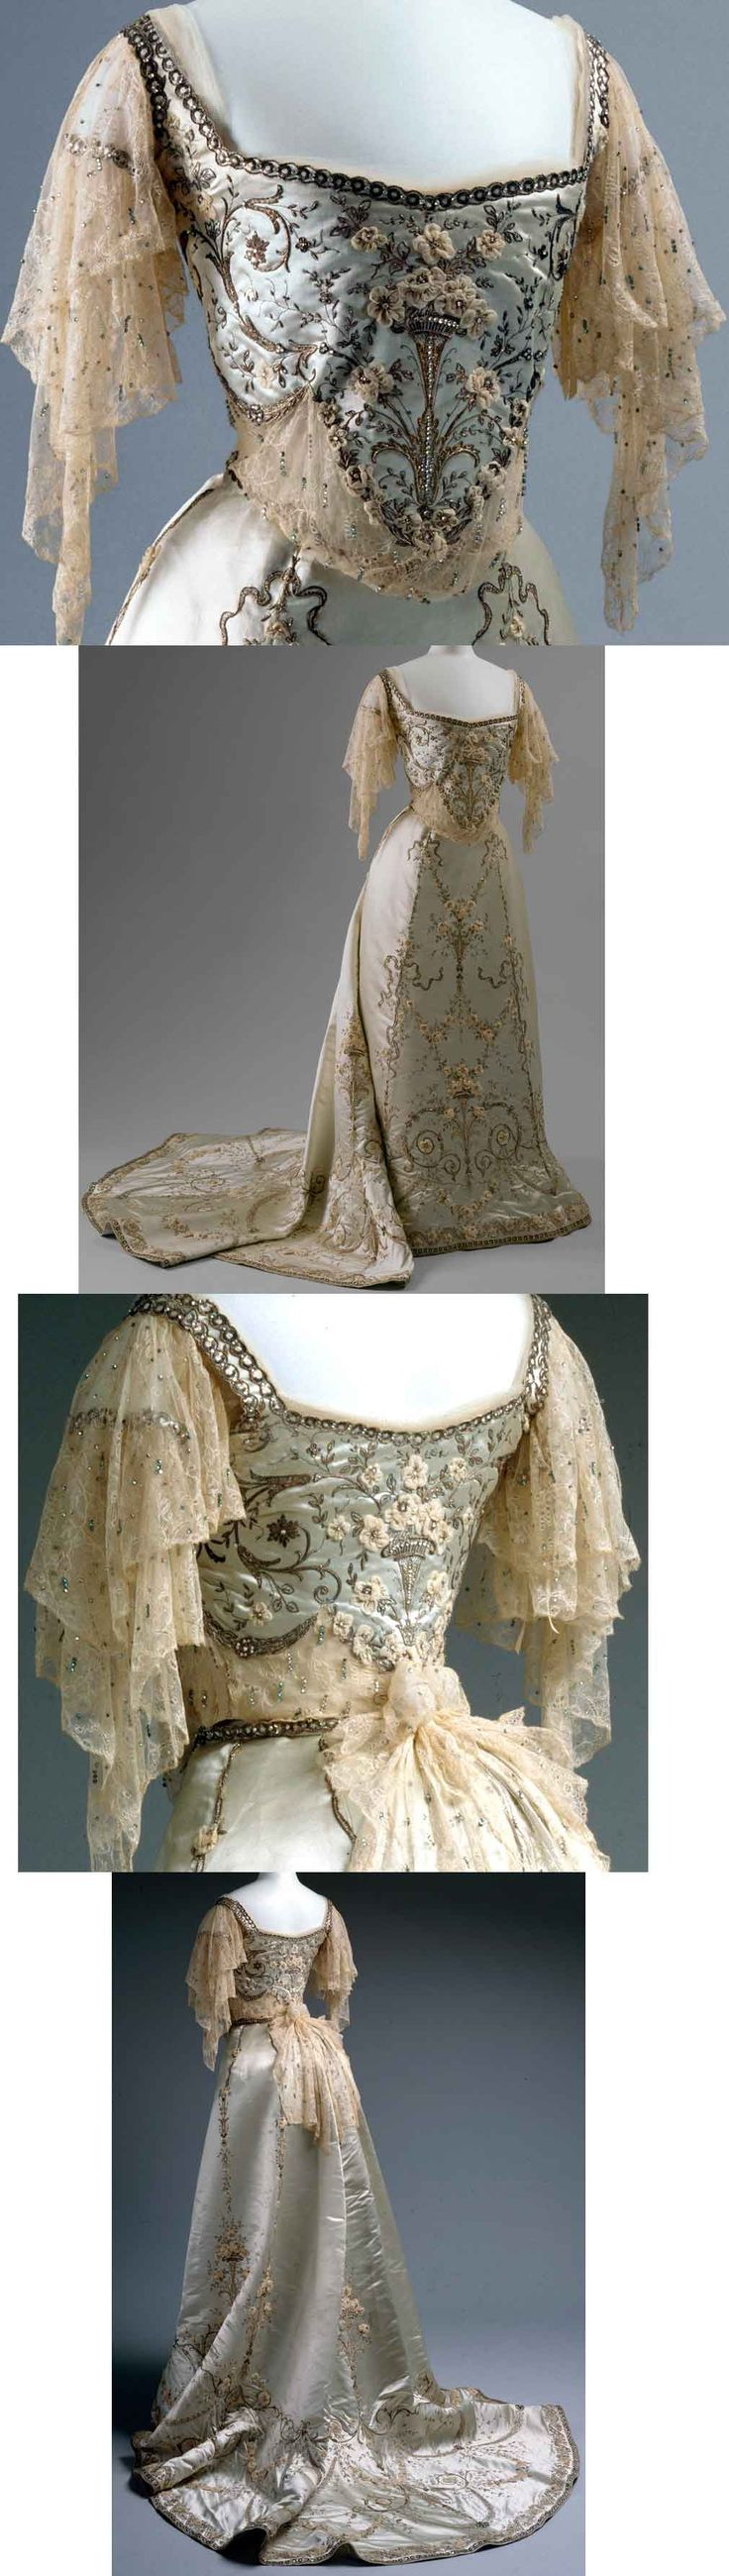 Worth ballgown, 1900-1905, silk and cotton with metallic thread, glass, and metal ornamentation.